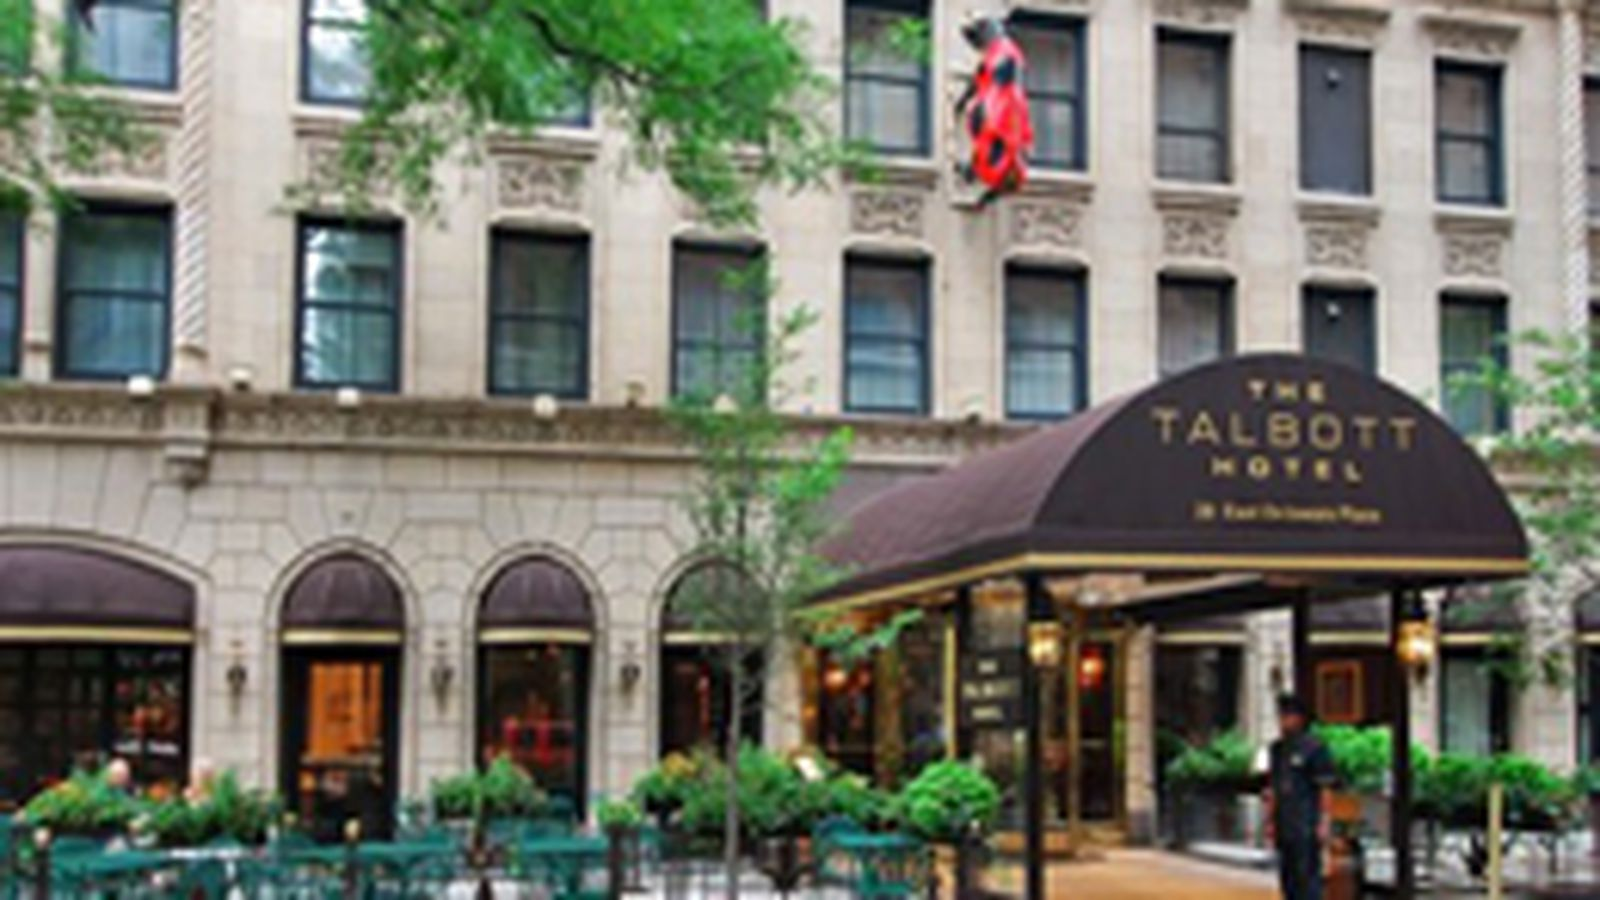 Talbot Hotel Restaurant Chicago